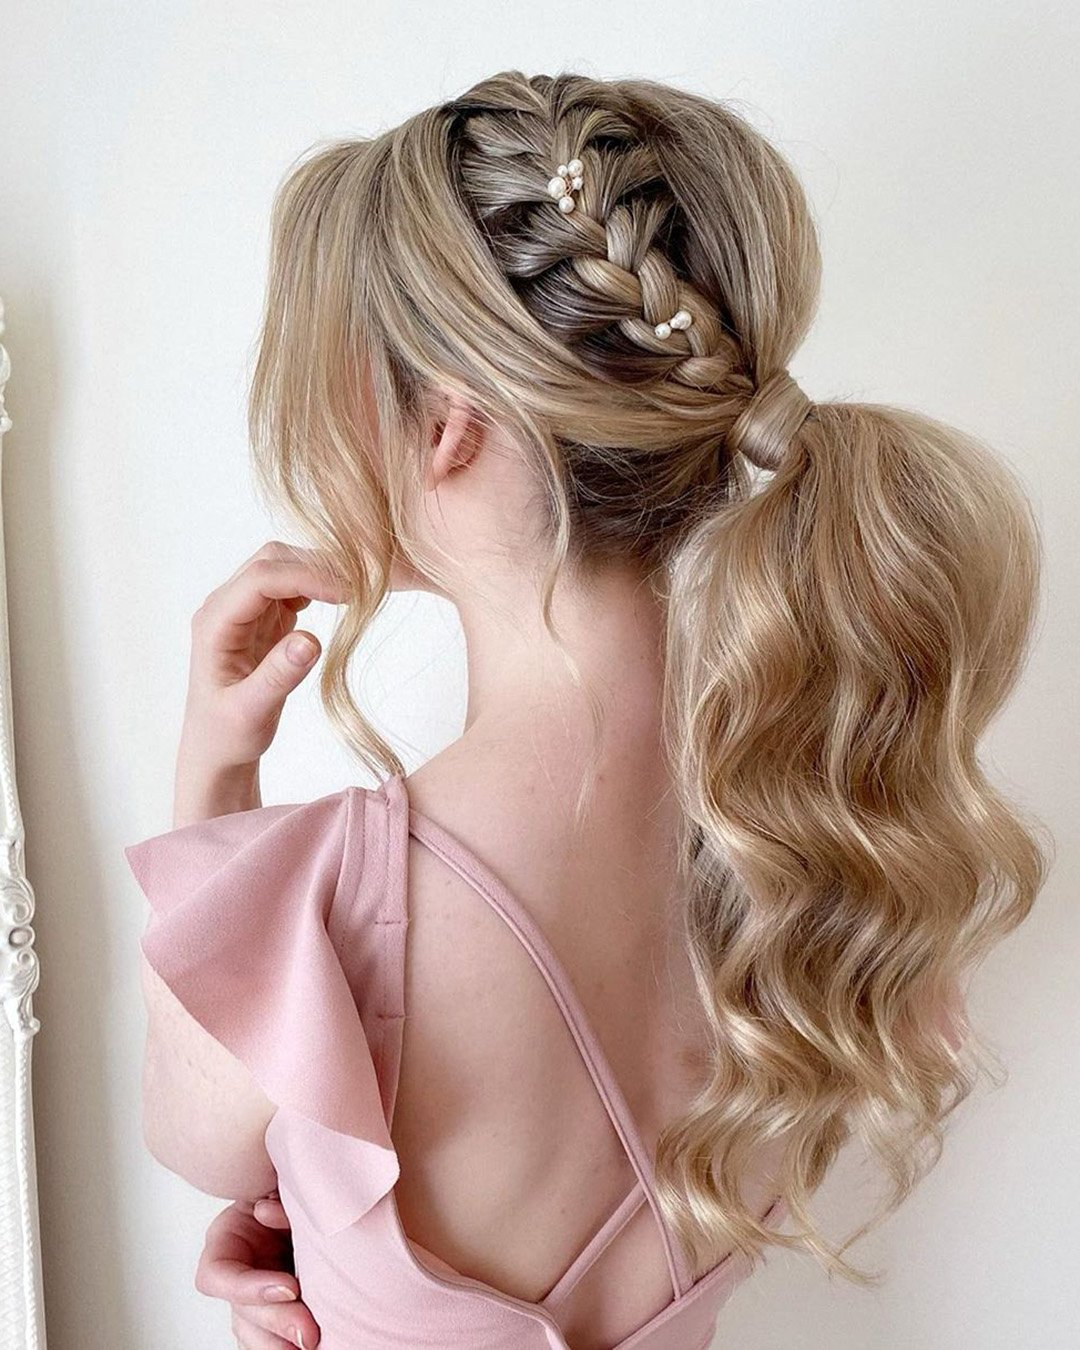 pony tail hairstyles wedding side braid volume long pearly.hairstylist